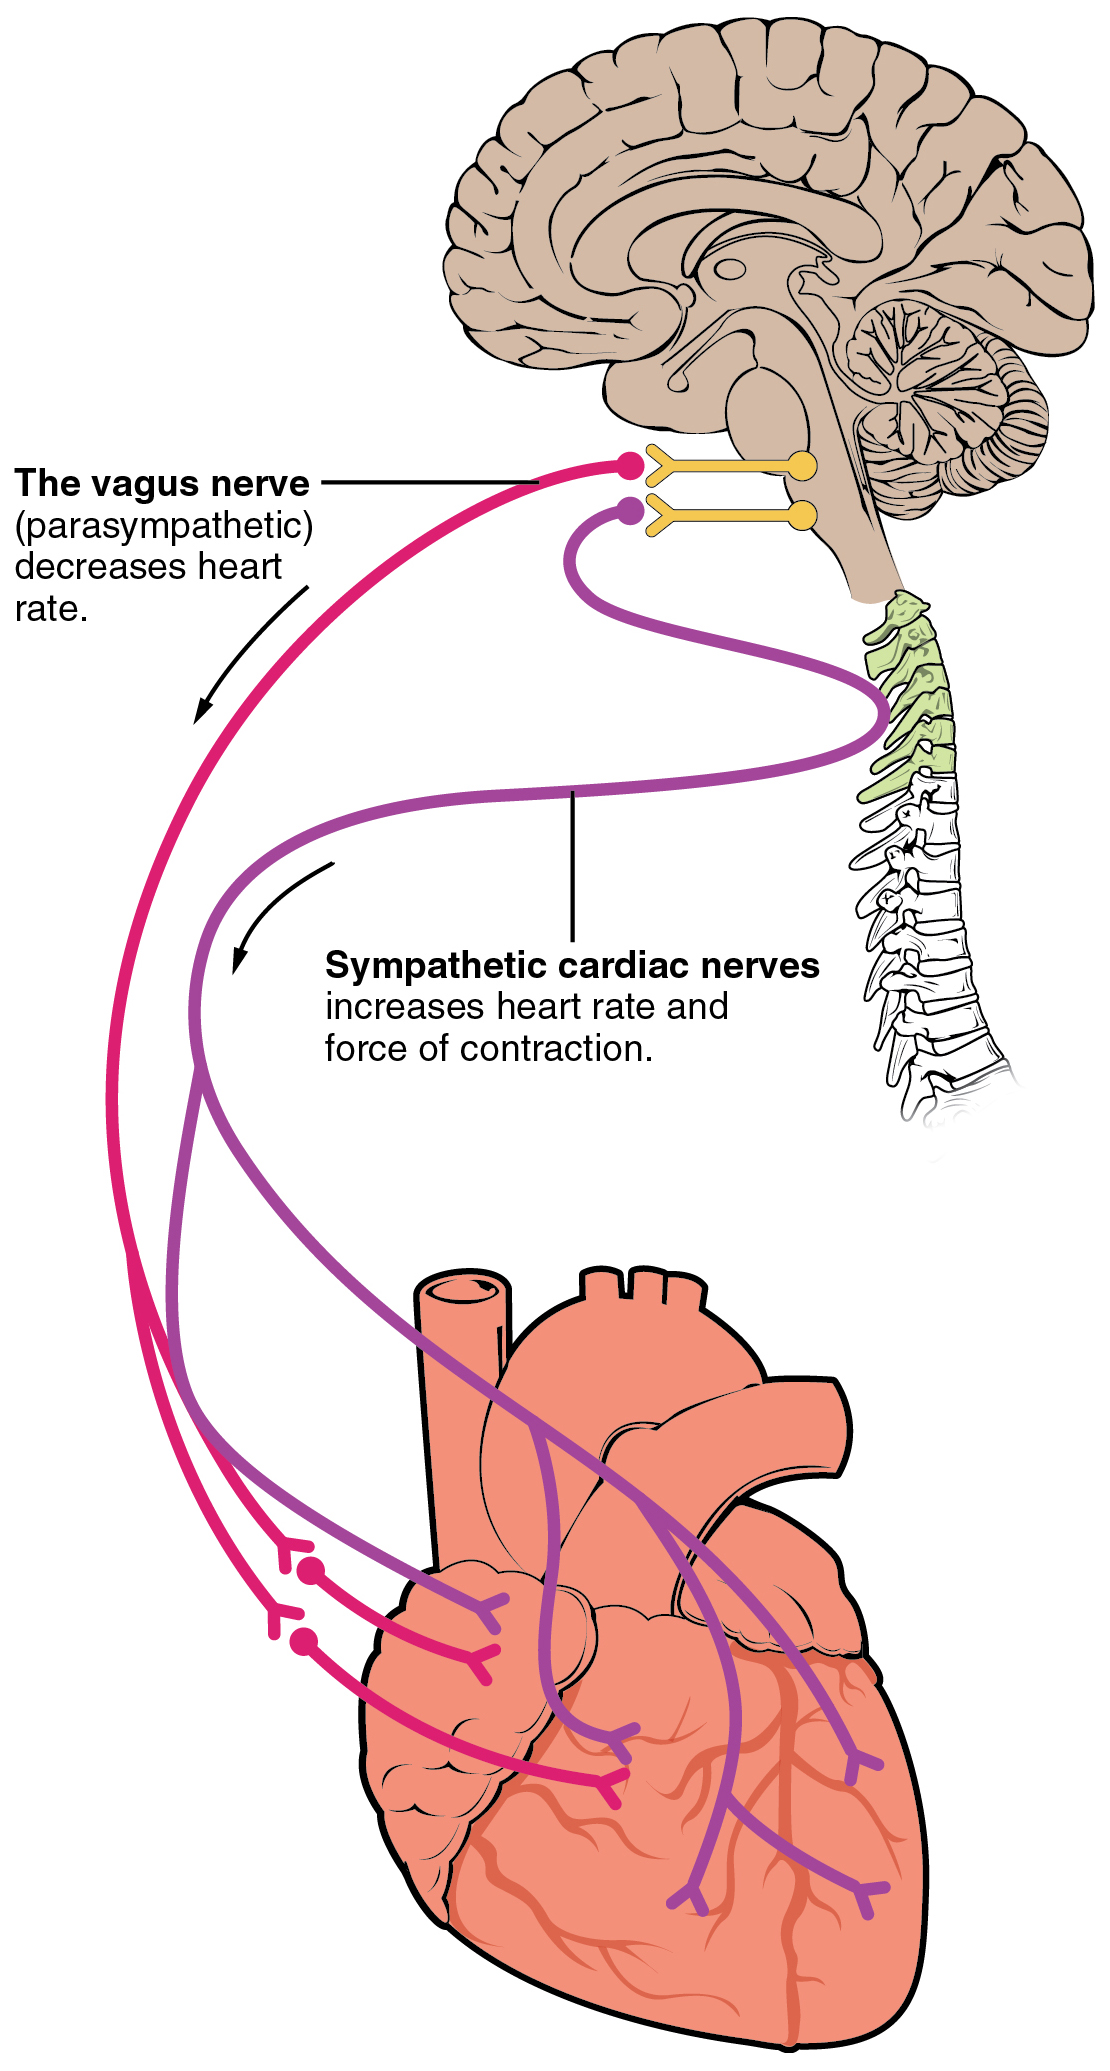 Illustration, with labels, showing the route between the vagus and sympathetic cardiac nerves.